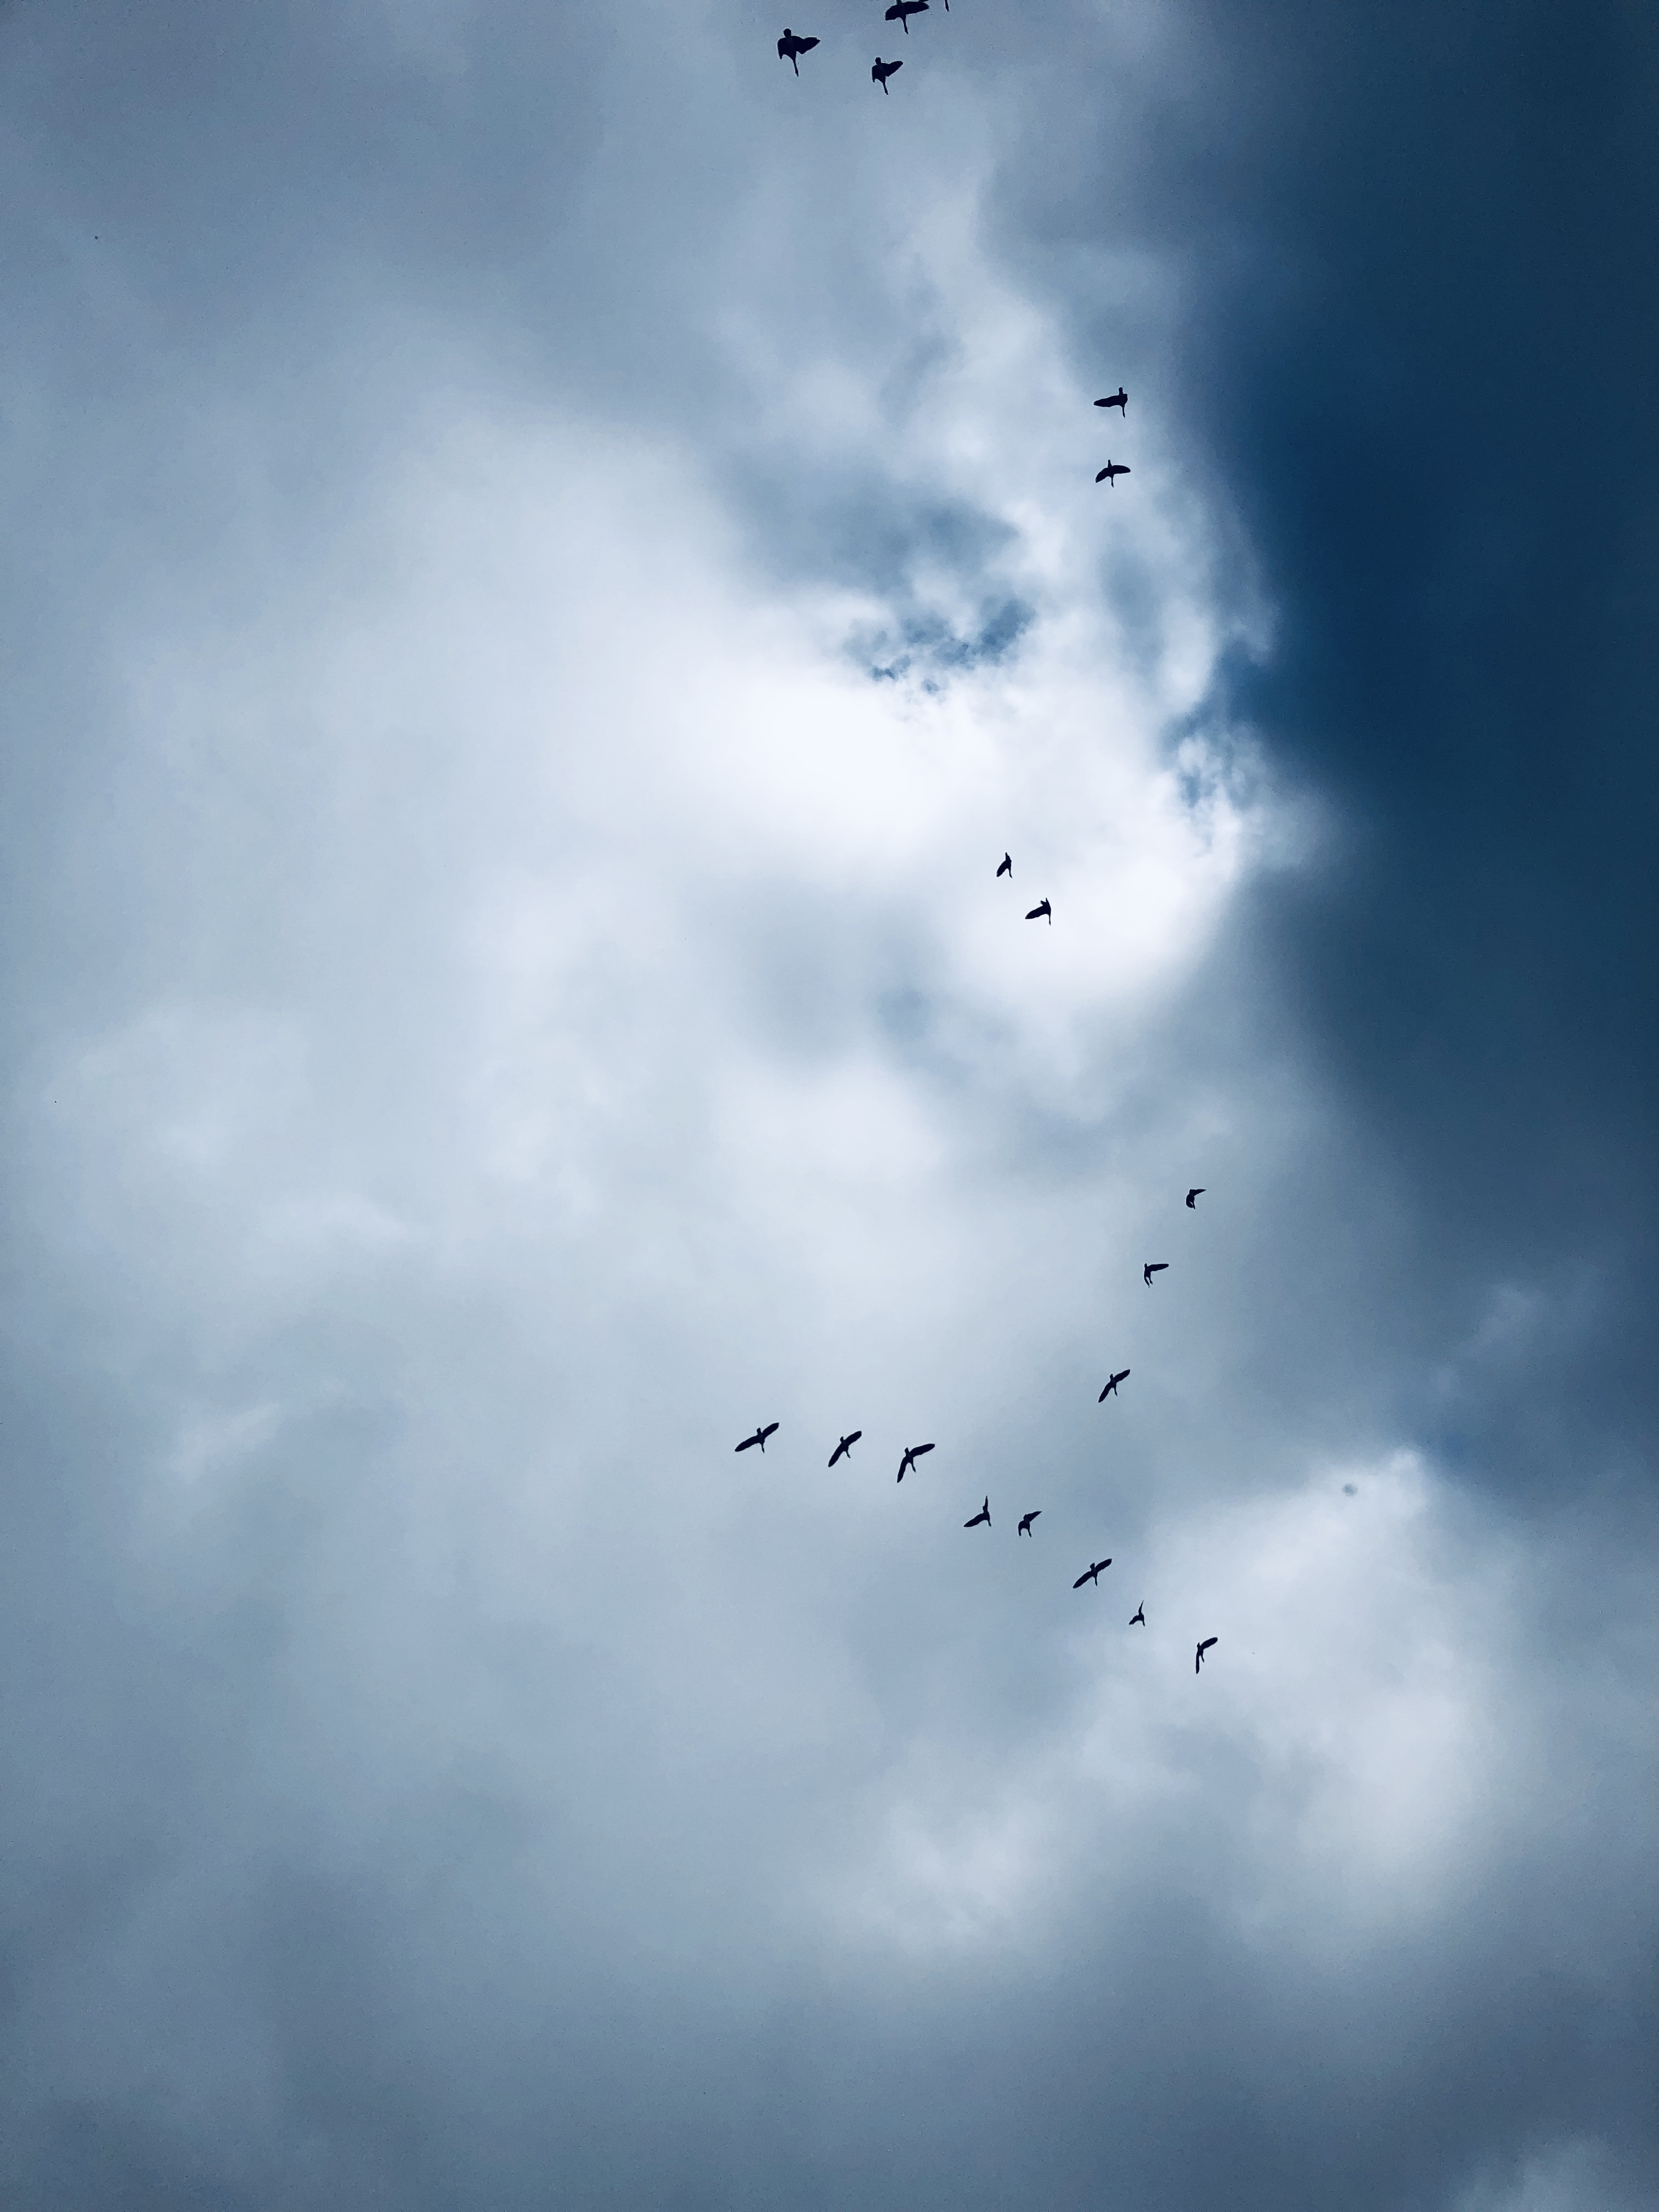 Looking straight up at geese flying in an uneven V shape, black against white clouds and blue sky